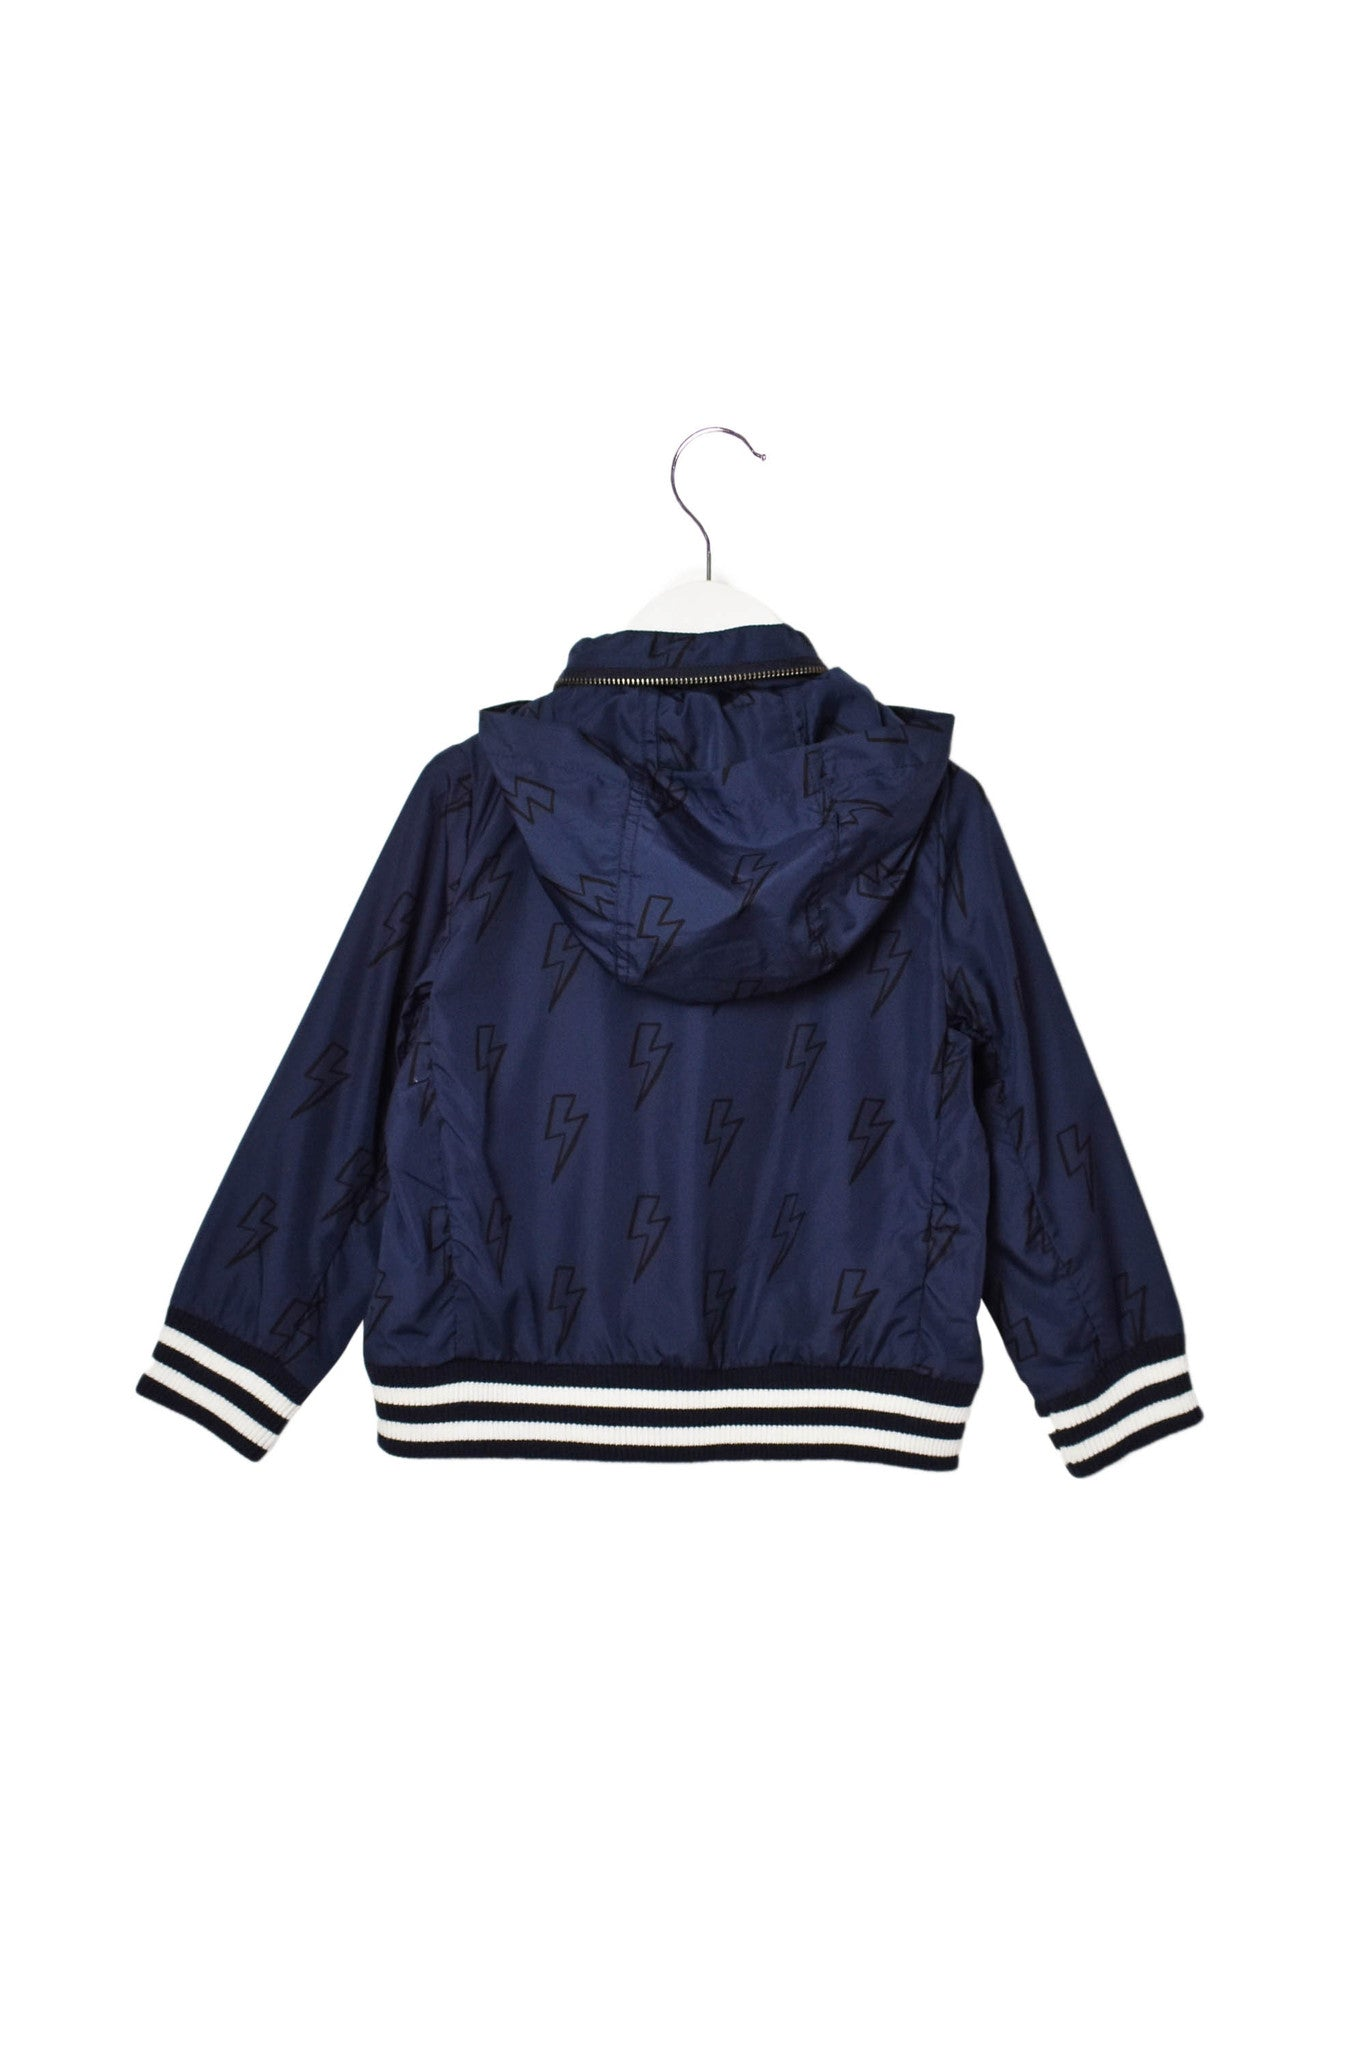 10003517 Seed Kids~Jacket 2-3T at Retykle